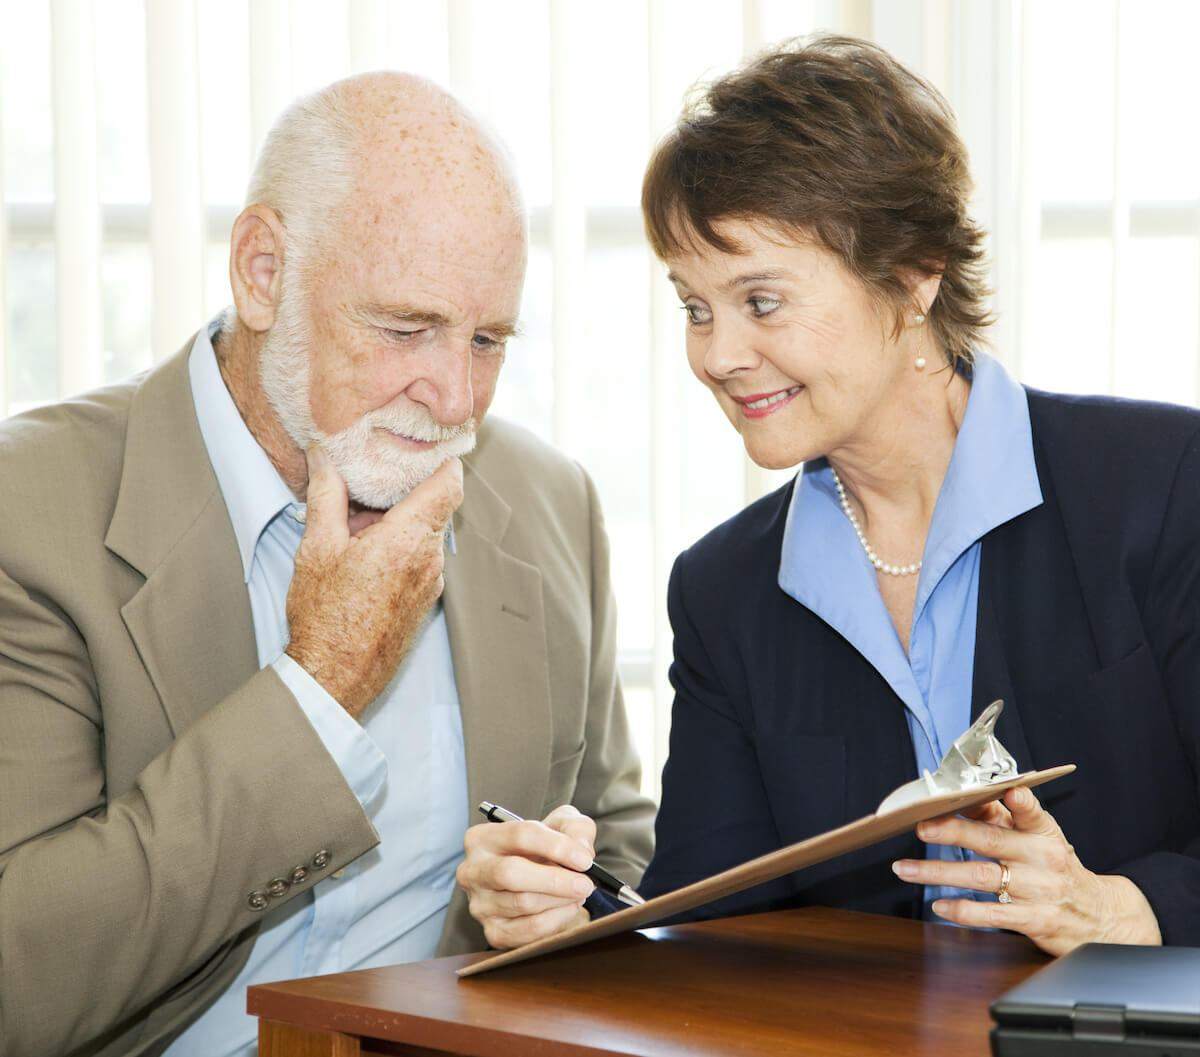 are timeshares scams: Elderly man thinking about signing a document while a woman looks at him